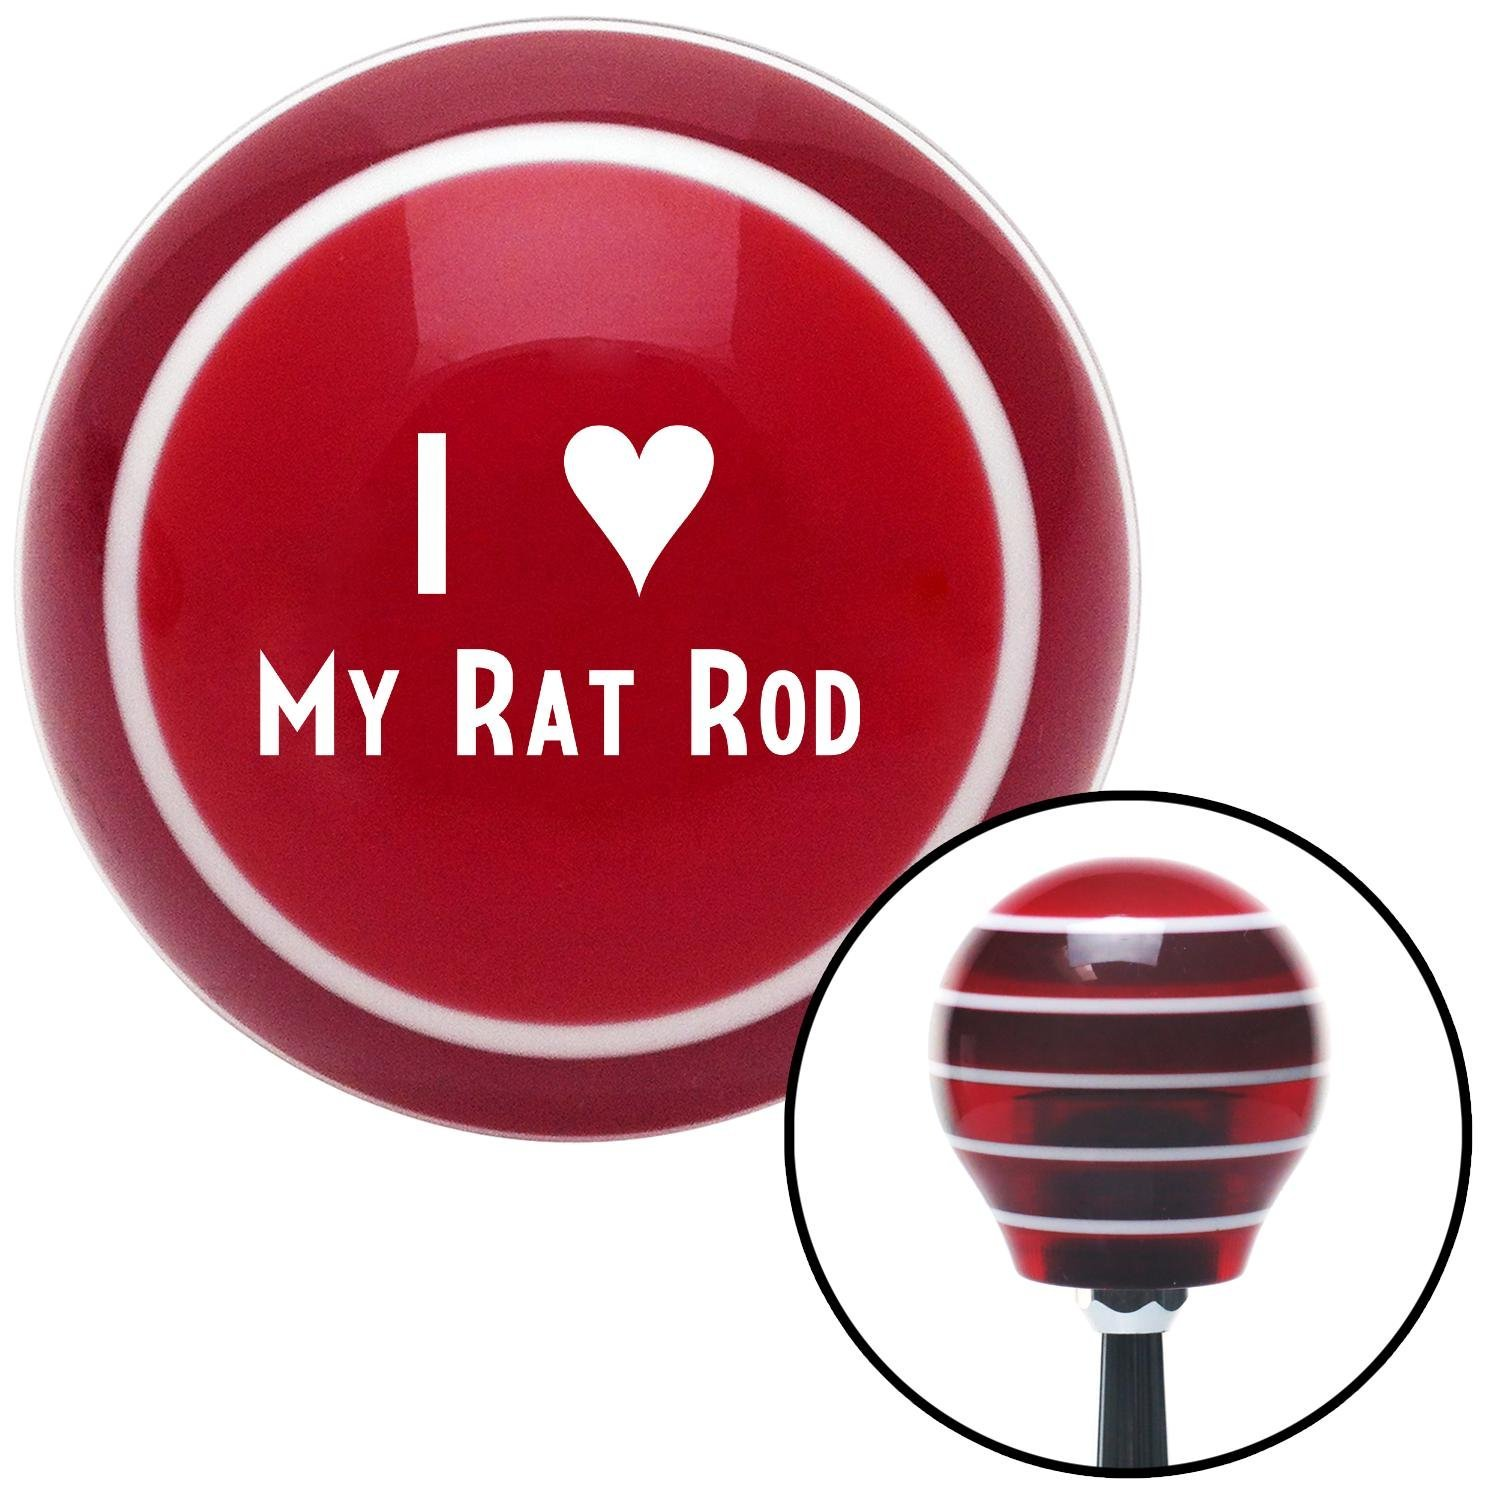 American Shifter 114401 Red Stripe Shift Knob with M16 x 1.5 Insert White I 3 My Rat Rod